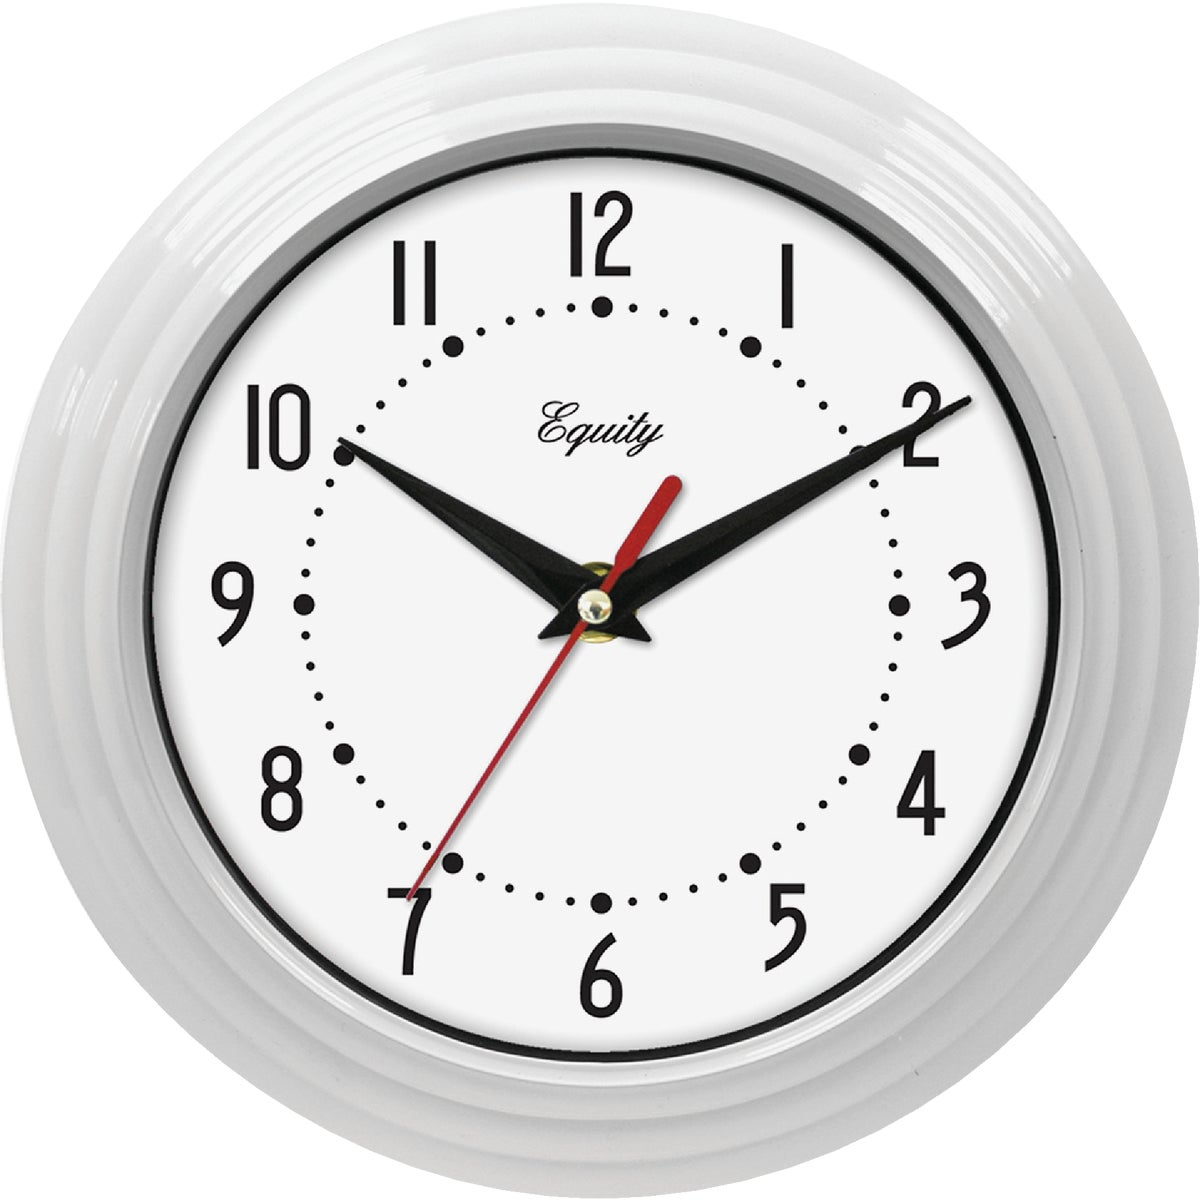 QUARTZ WALL CLOCK - 8001 by Geneva Clock Company